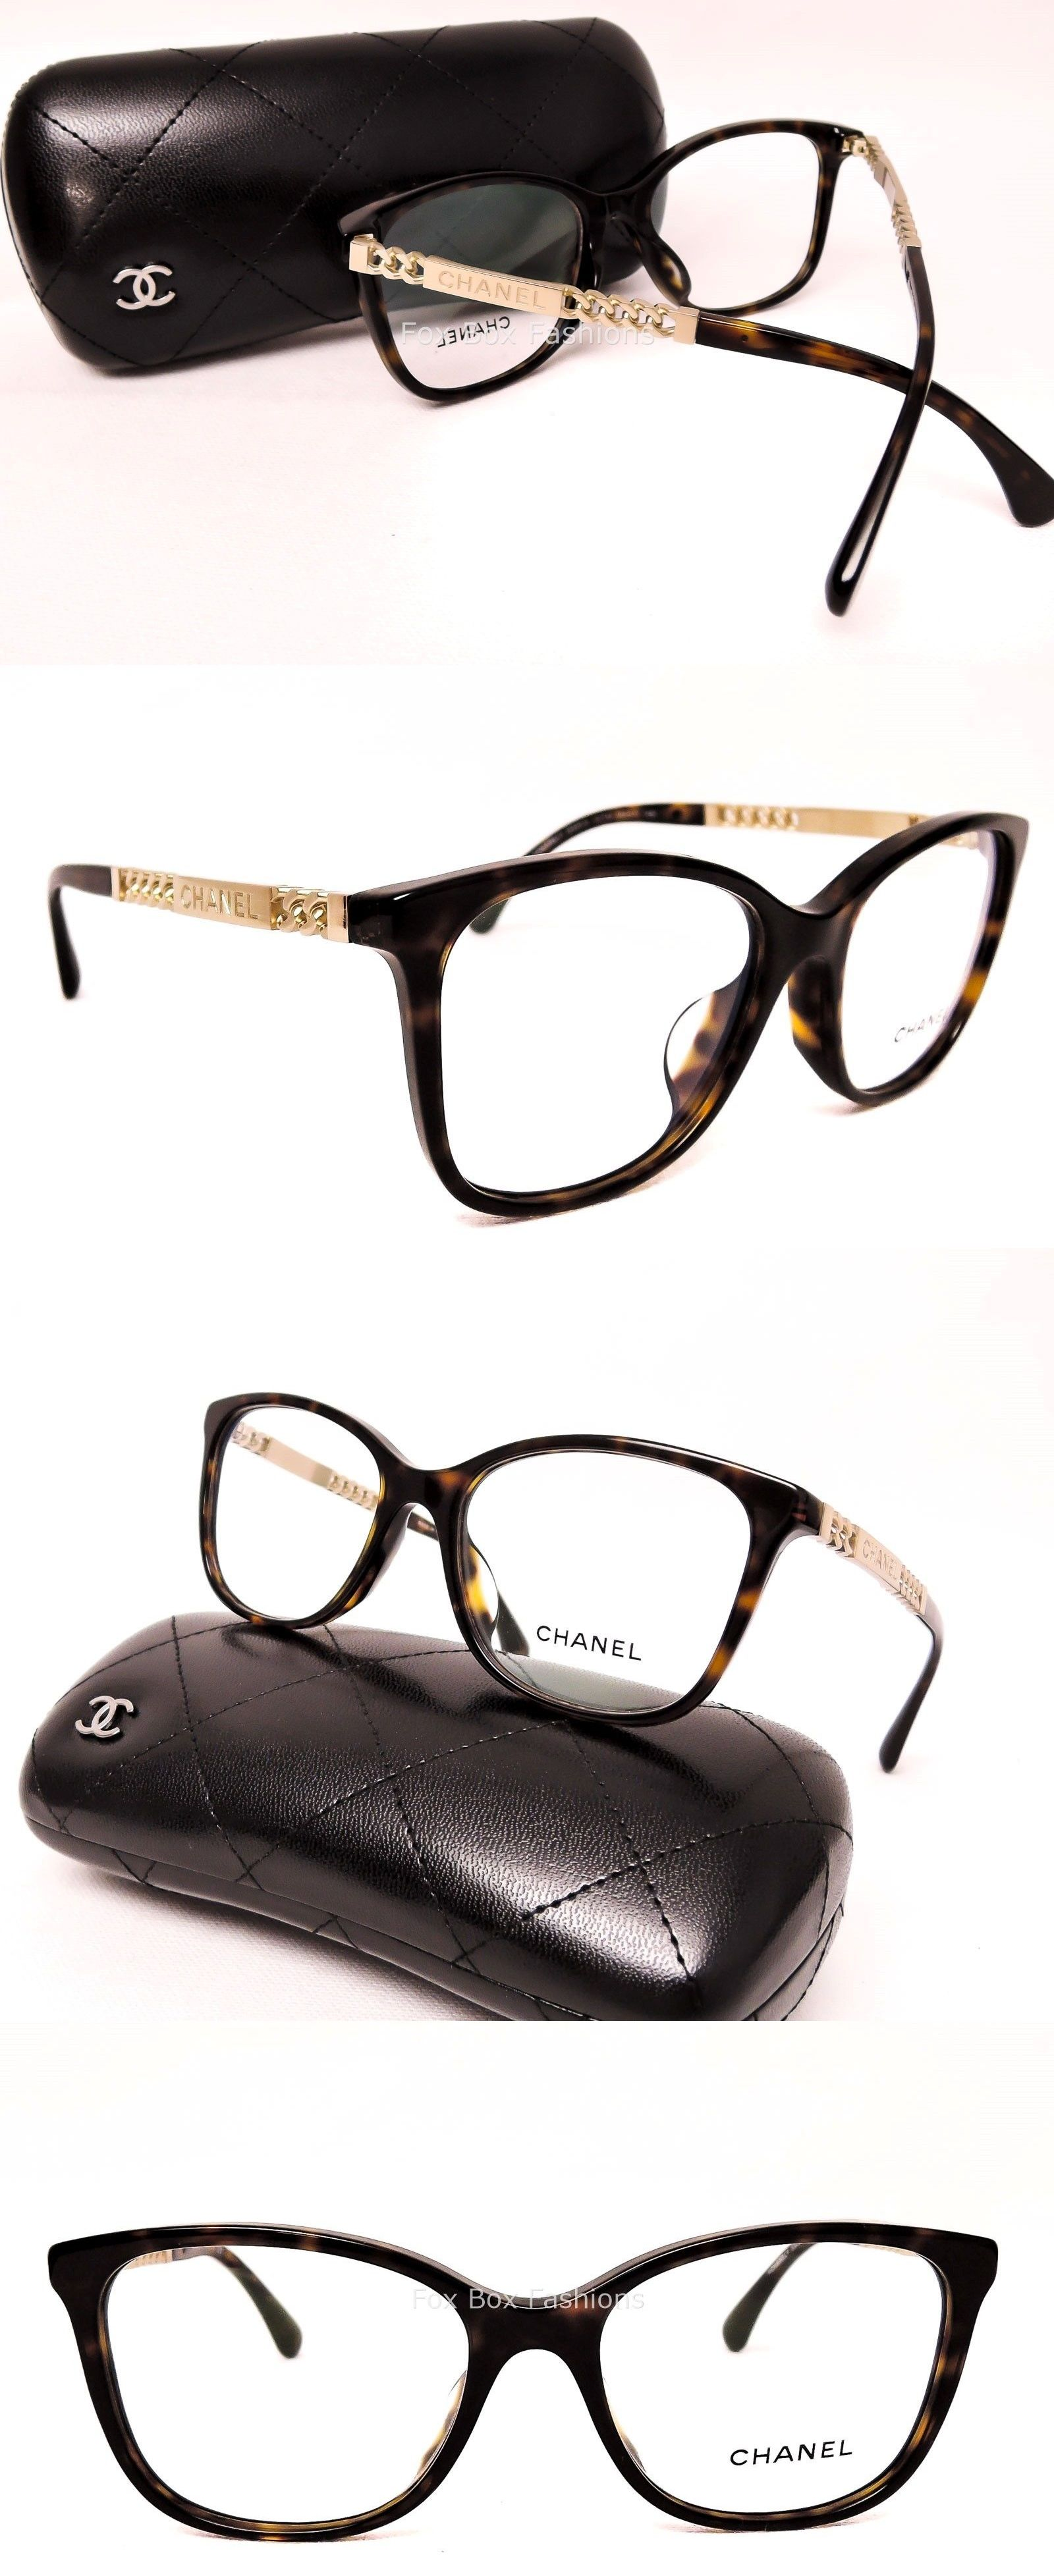 f74341d8321 Eyeglass Frames  Chanel 3343-A 714 Eyeglasses Optical Frames Glasses  Tortoise Gold Chain 54Mm -  BUY IT NOW ONLY   148.95 on eBay!